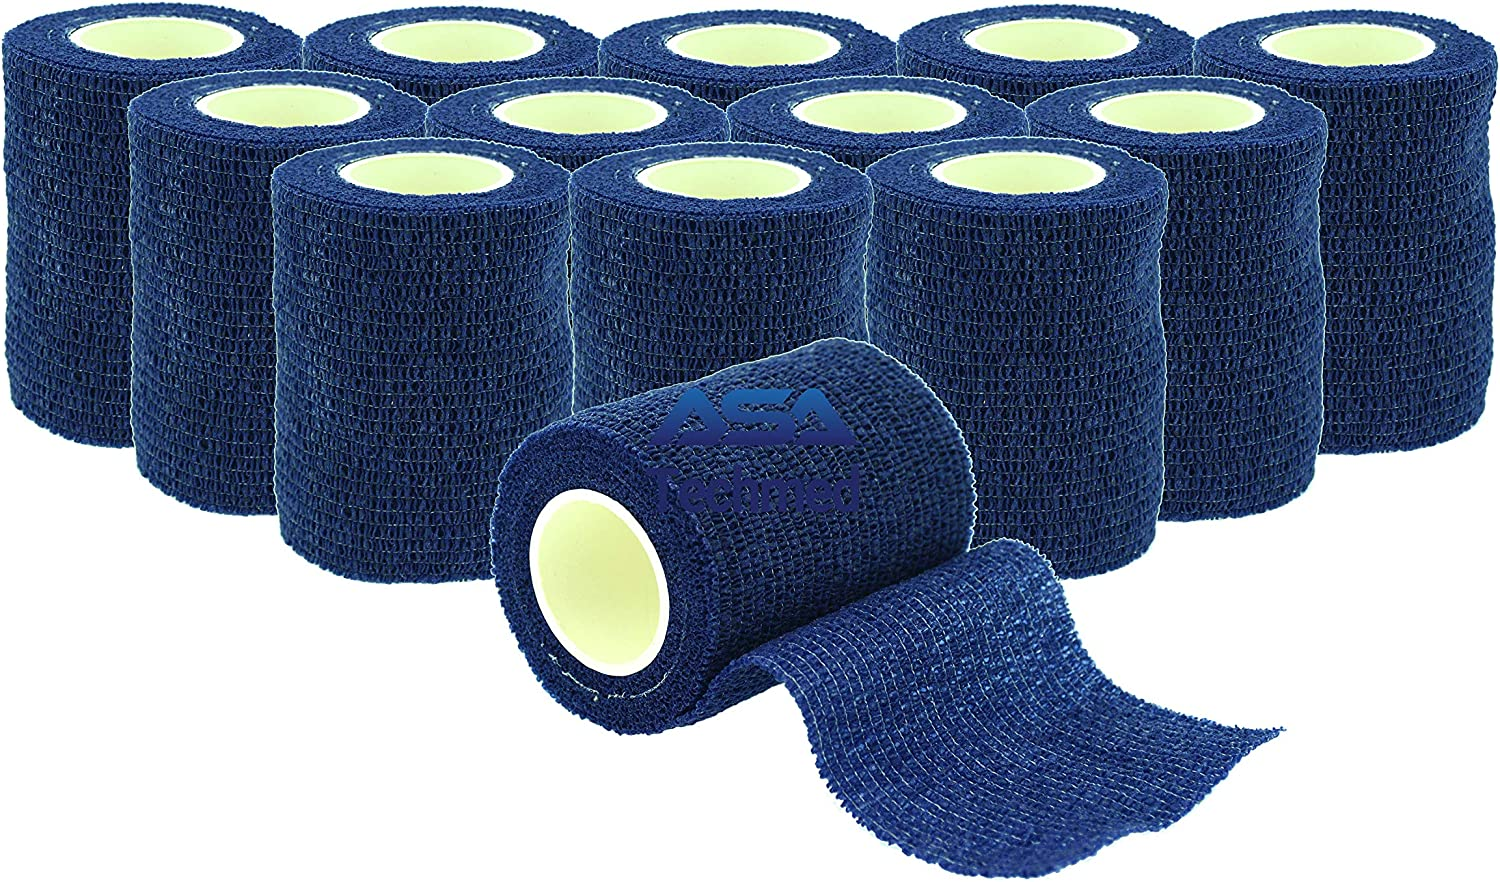 """ASA TECHMED - Max 48% OFF 12 Pack 3"""" Yards Self-Adherent 5 Sale price x Cohesive"""